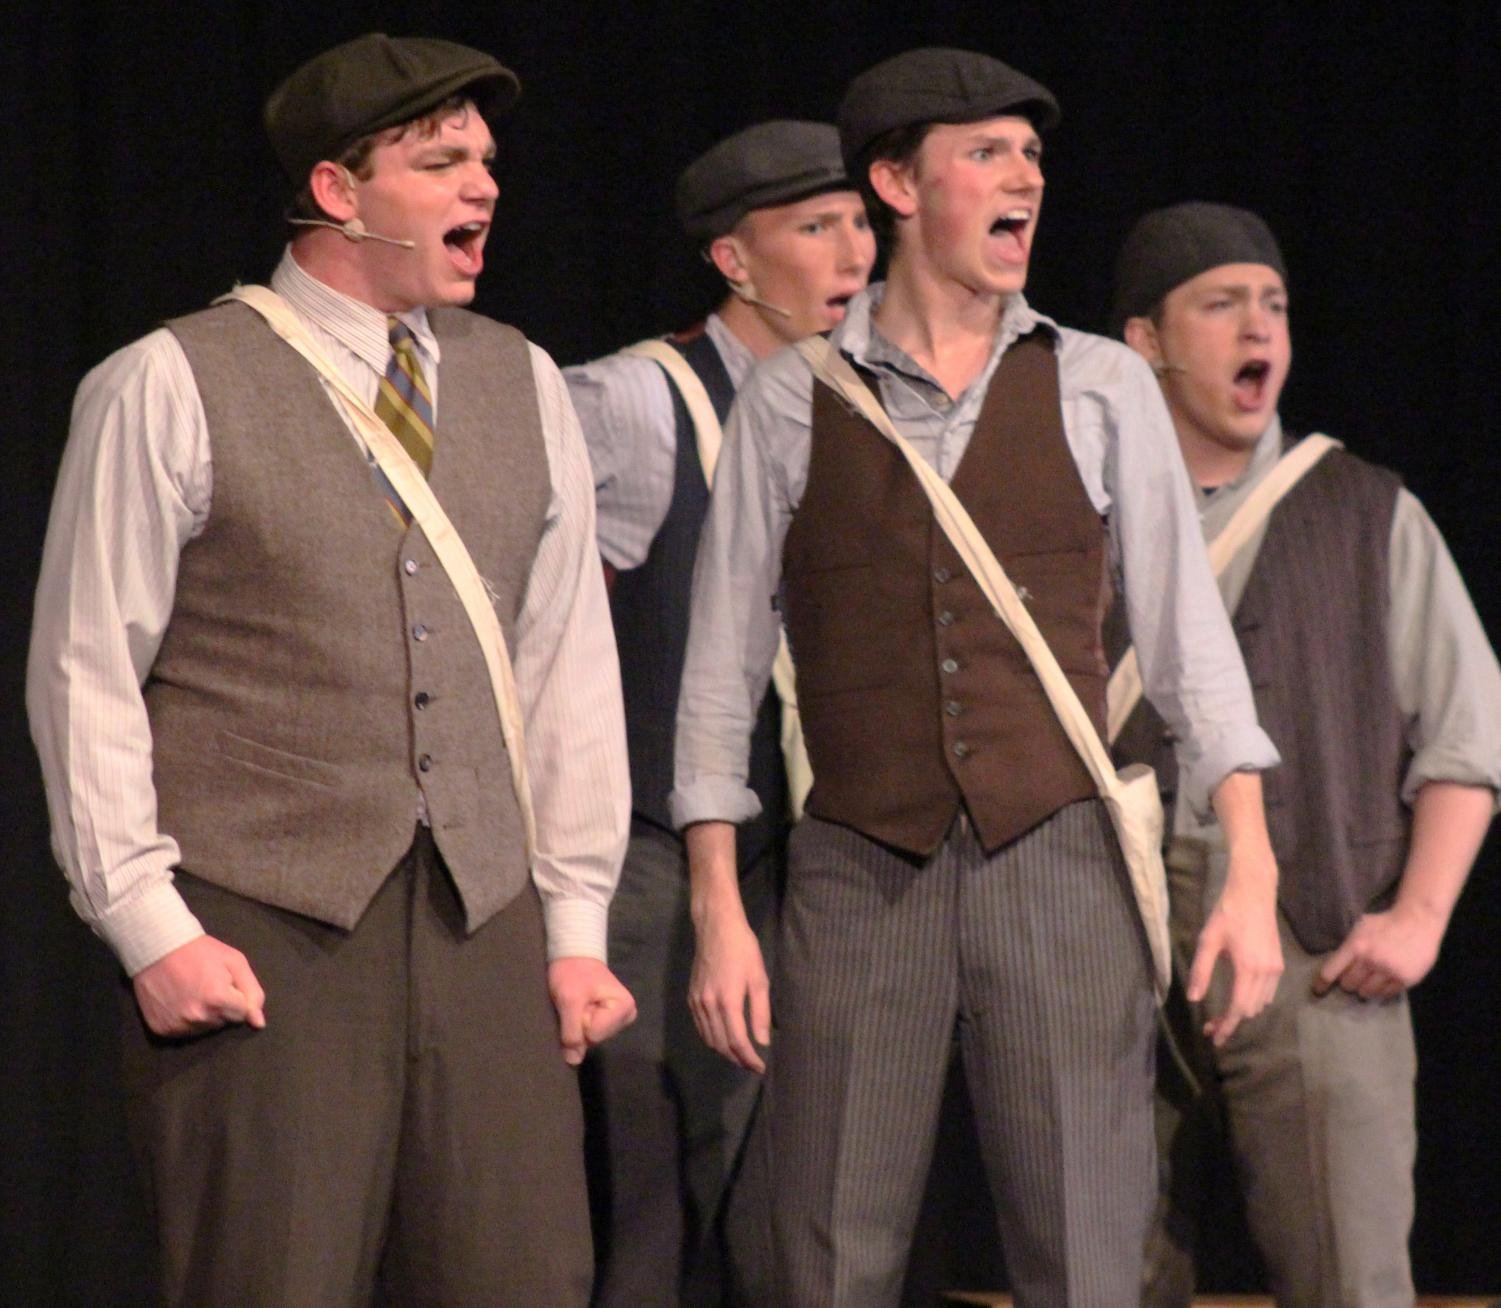 SINGING+LOUD.+Newsies+sing+out+with+lots+of+enthusiasm.